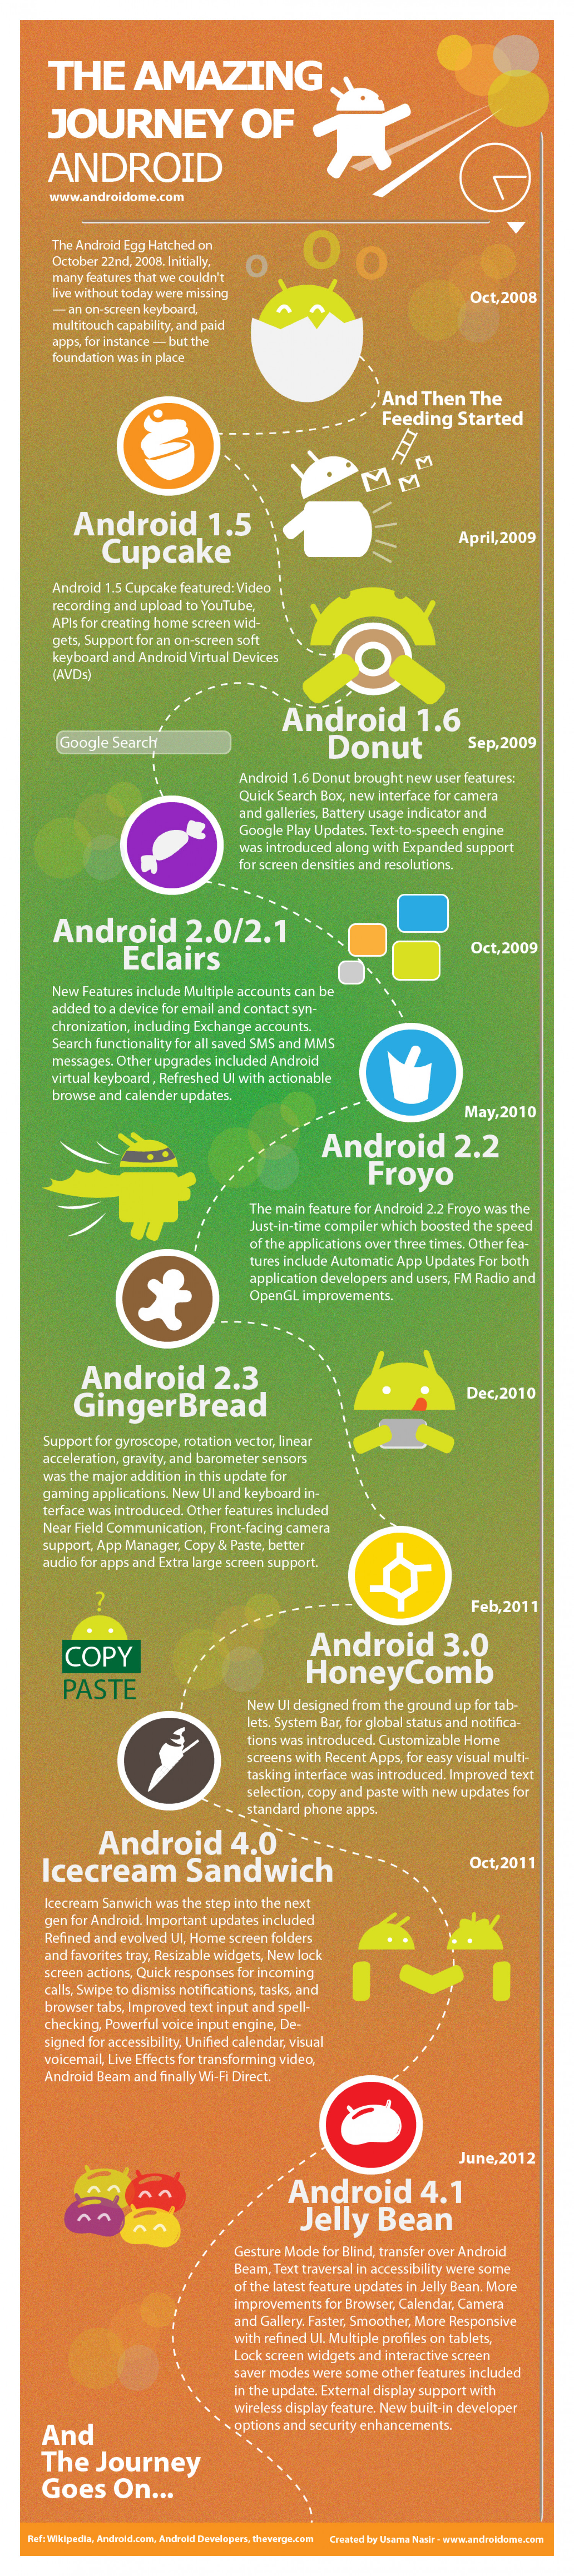 The Amazing Journey of Android Infographic